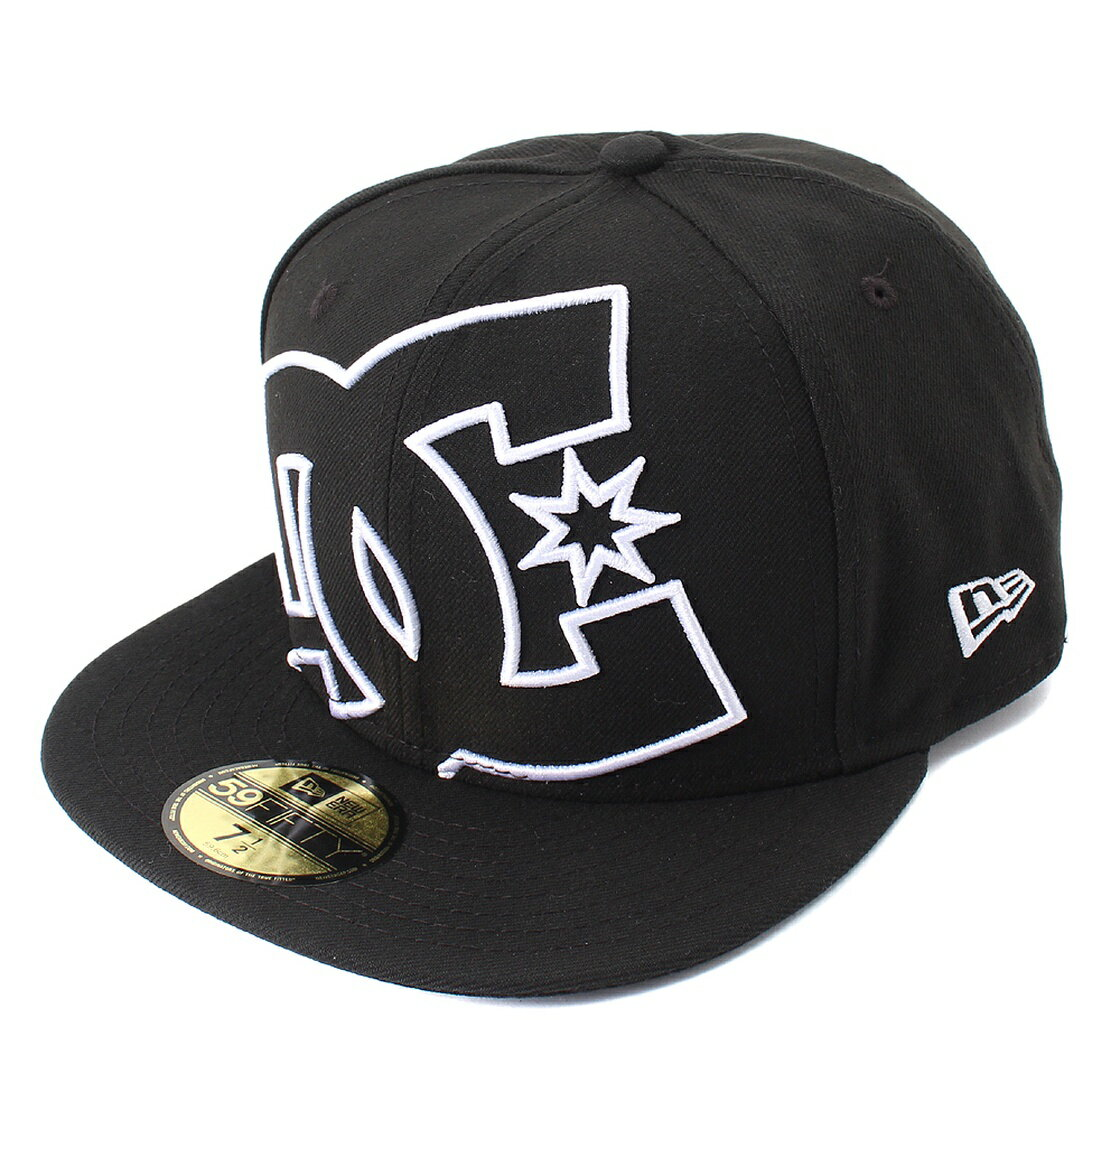 ディーシー (DC SHOES) New Era 59FIFTY キャップ COVERAGE【51300130 KTF0】